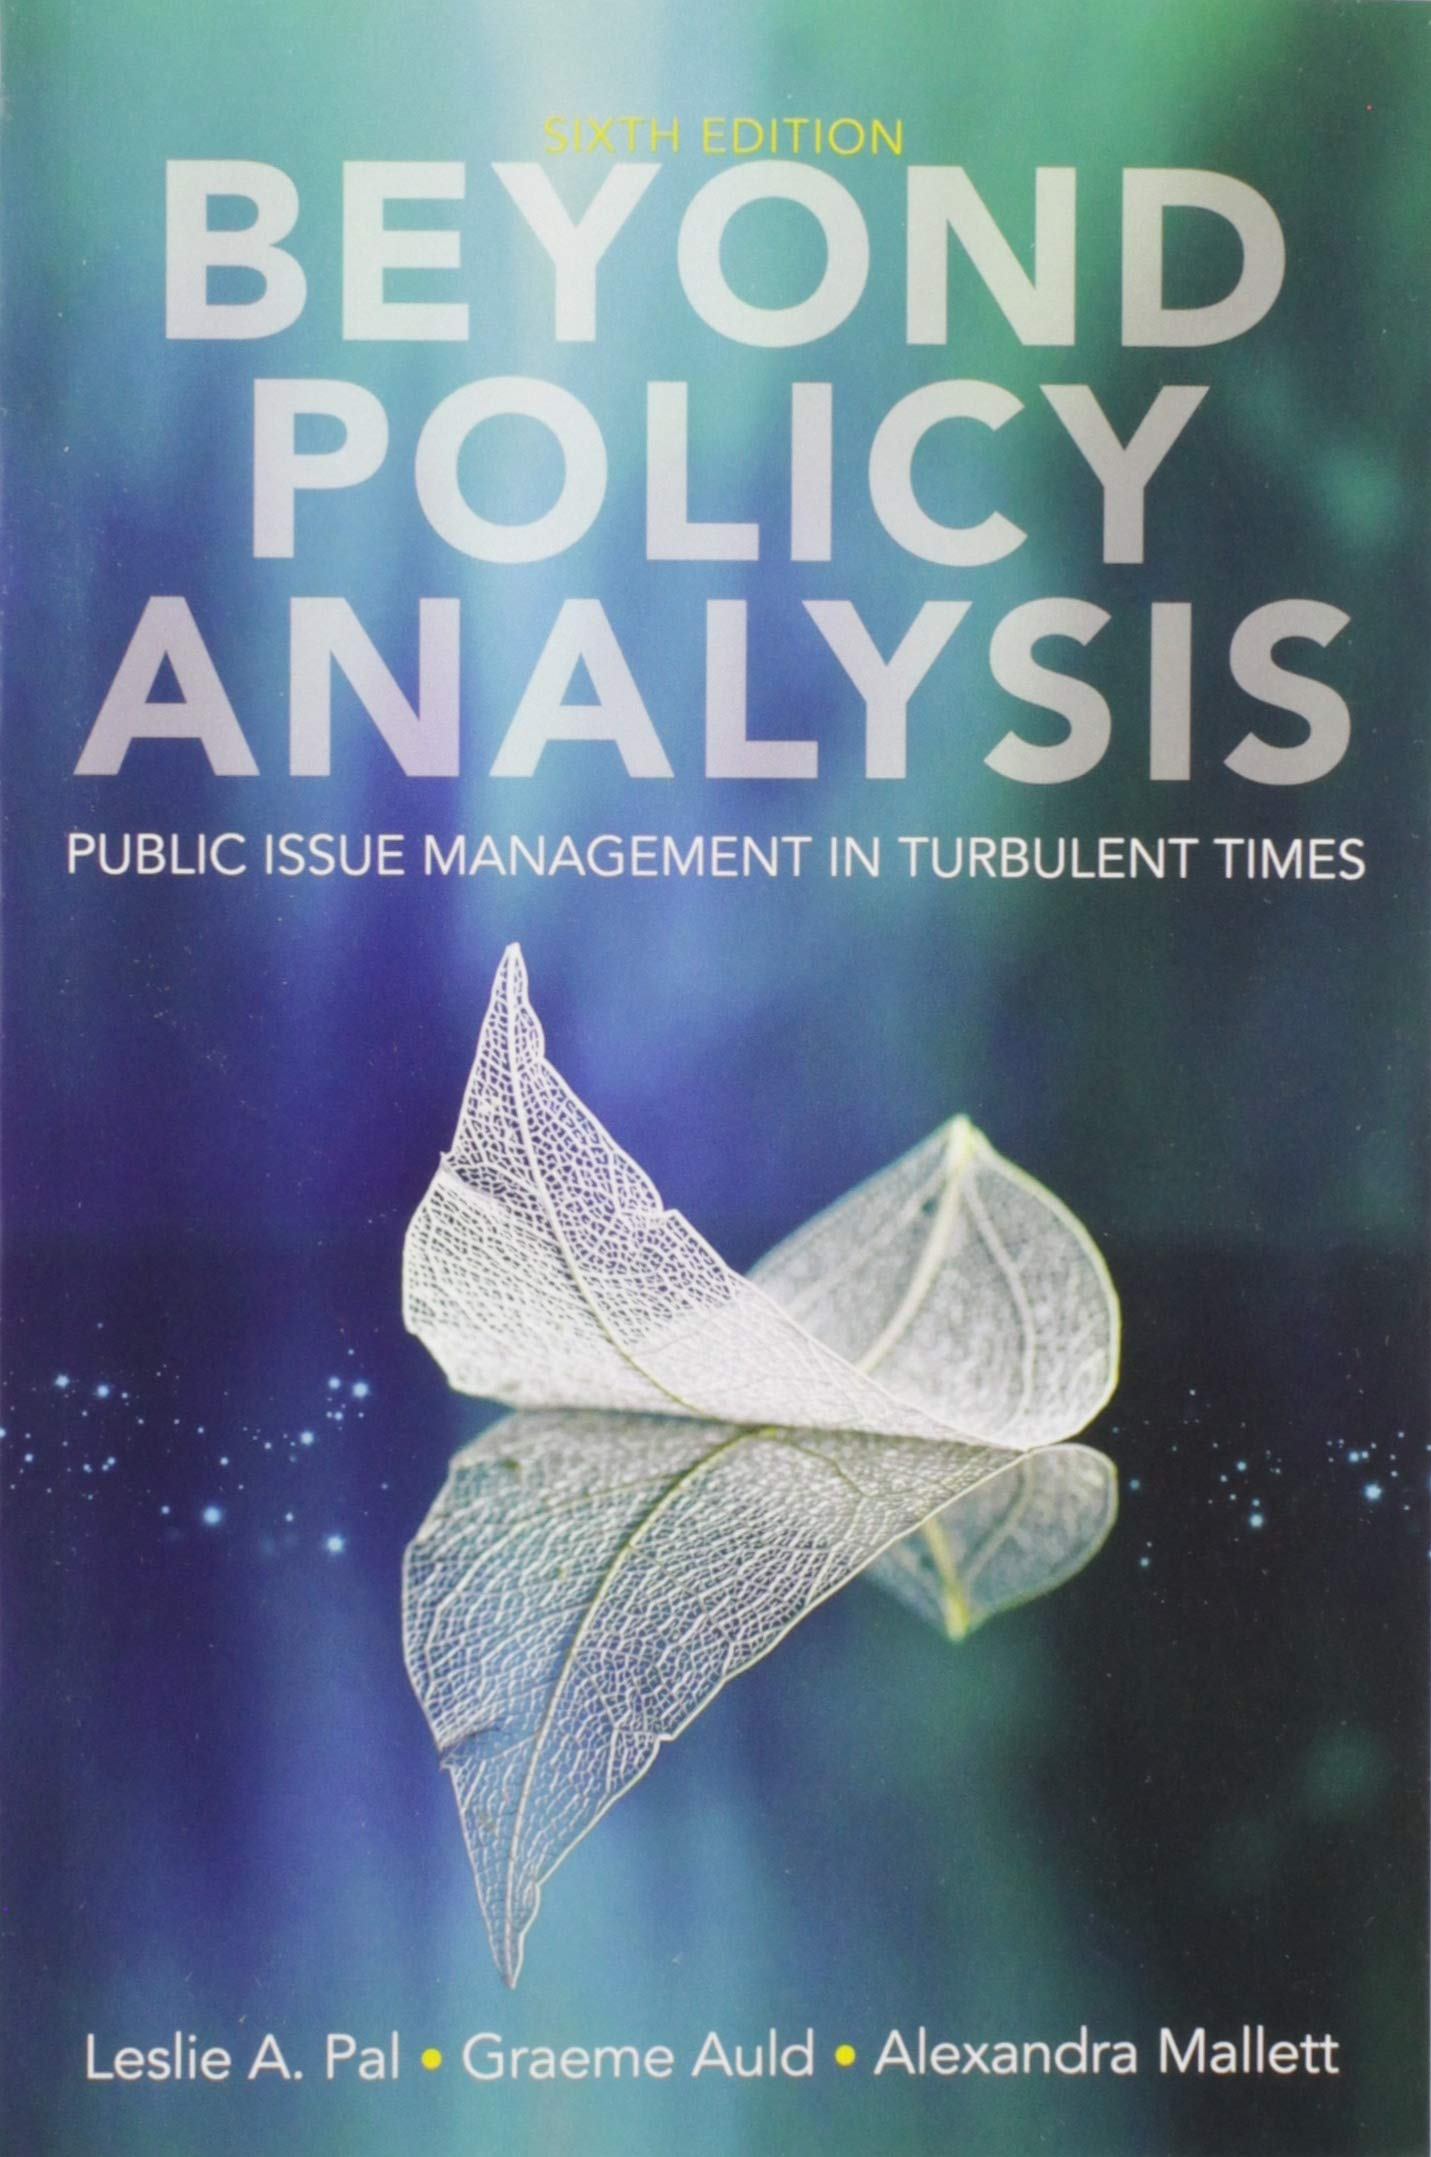 Beyond Policy Analysis: Public Issue Management in Turbulent Times, sixth edition